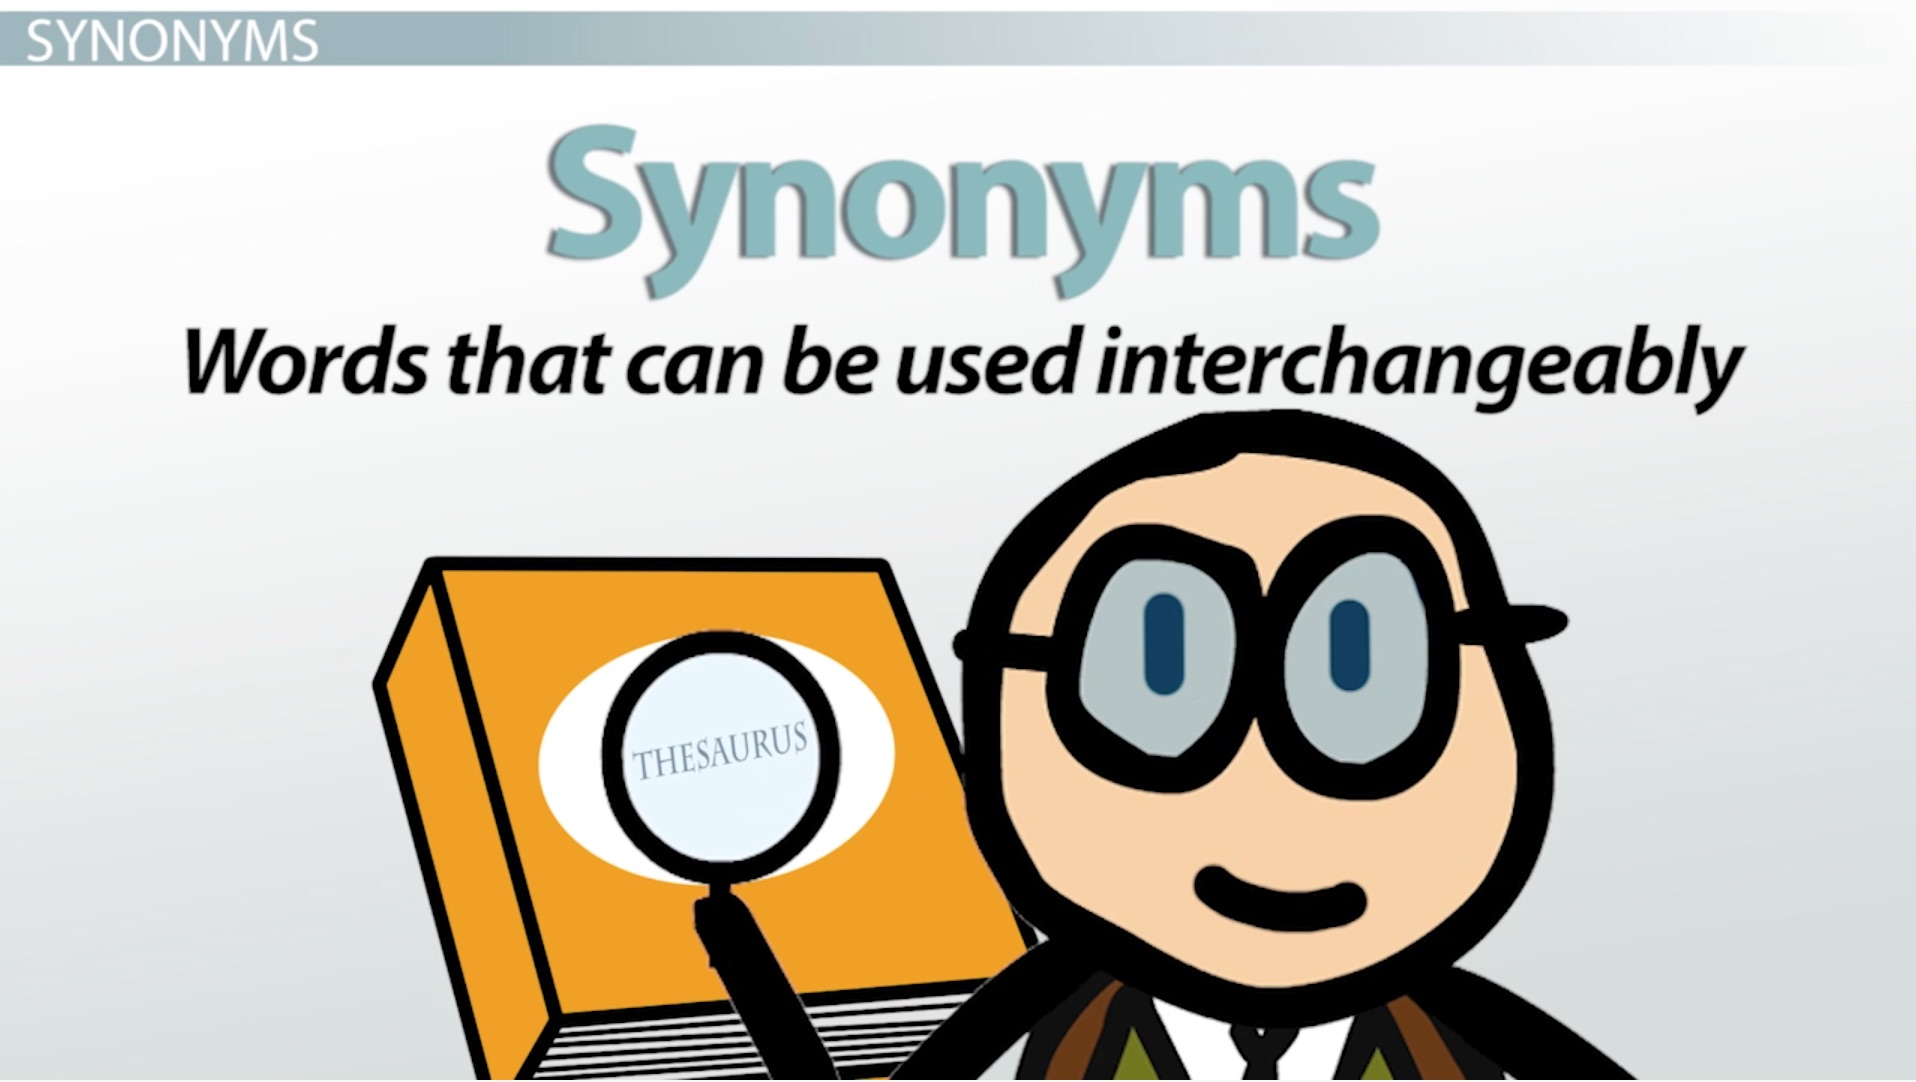 essay synonyms antonyms Teaching synonyms and antonyms to your students this lesson plan outlines each, using a video to engage students with content lead discussions.